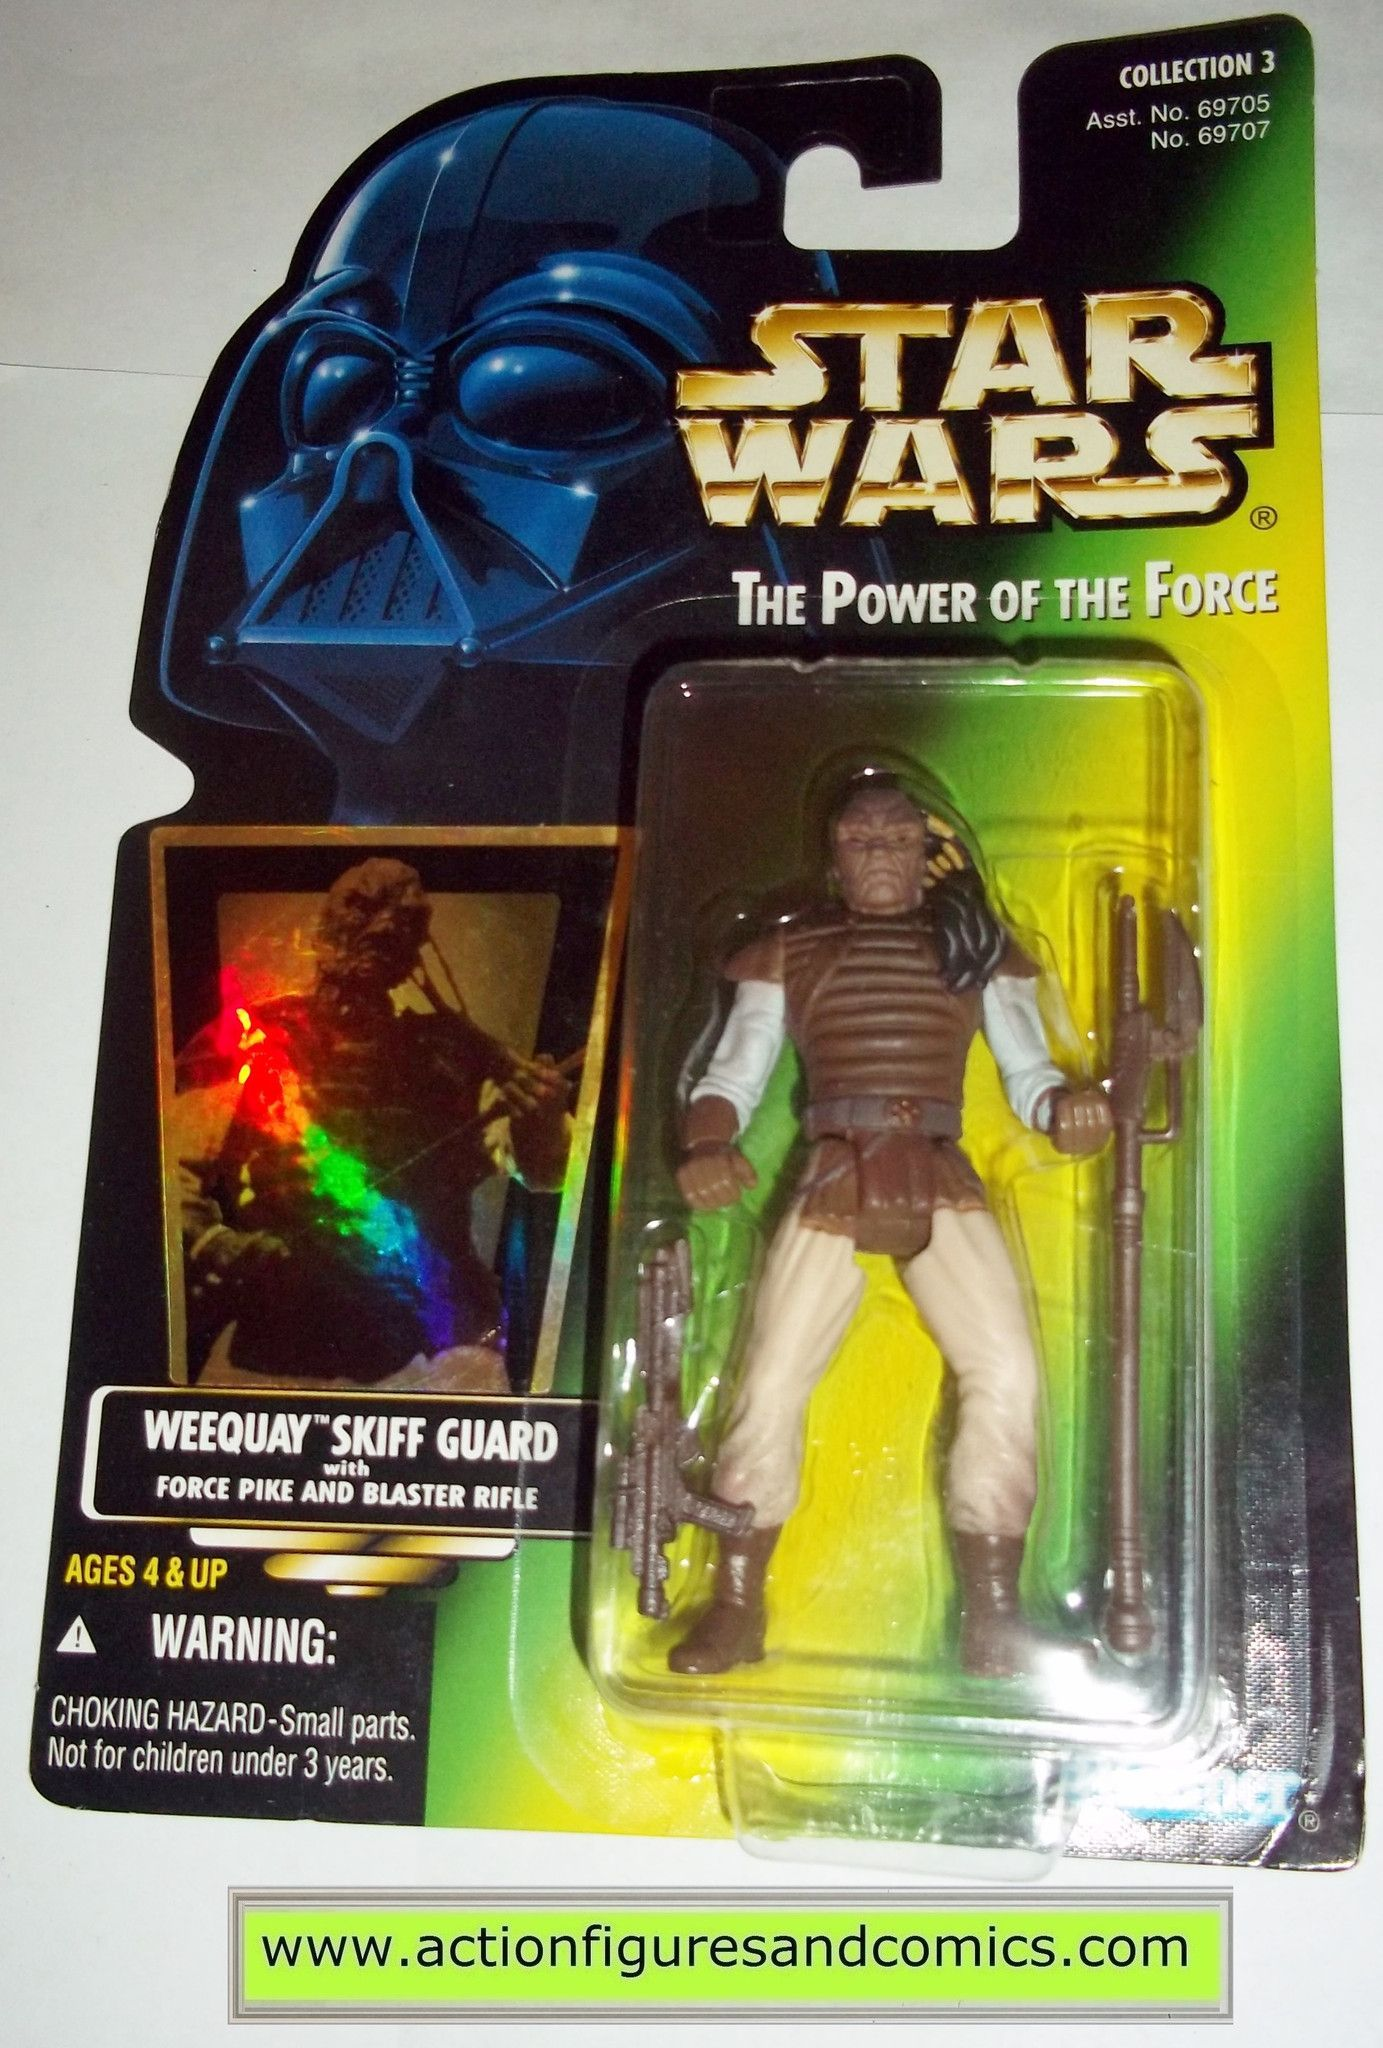 Star Wars Action Figures Weequay Power Of The Force 01 Collection 3